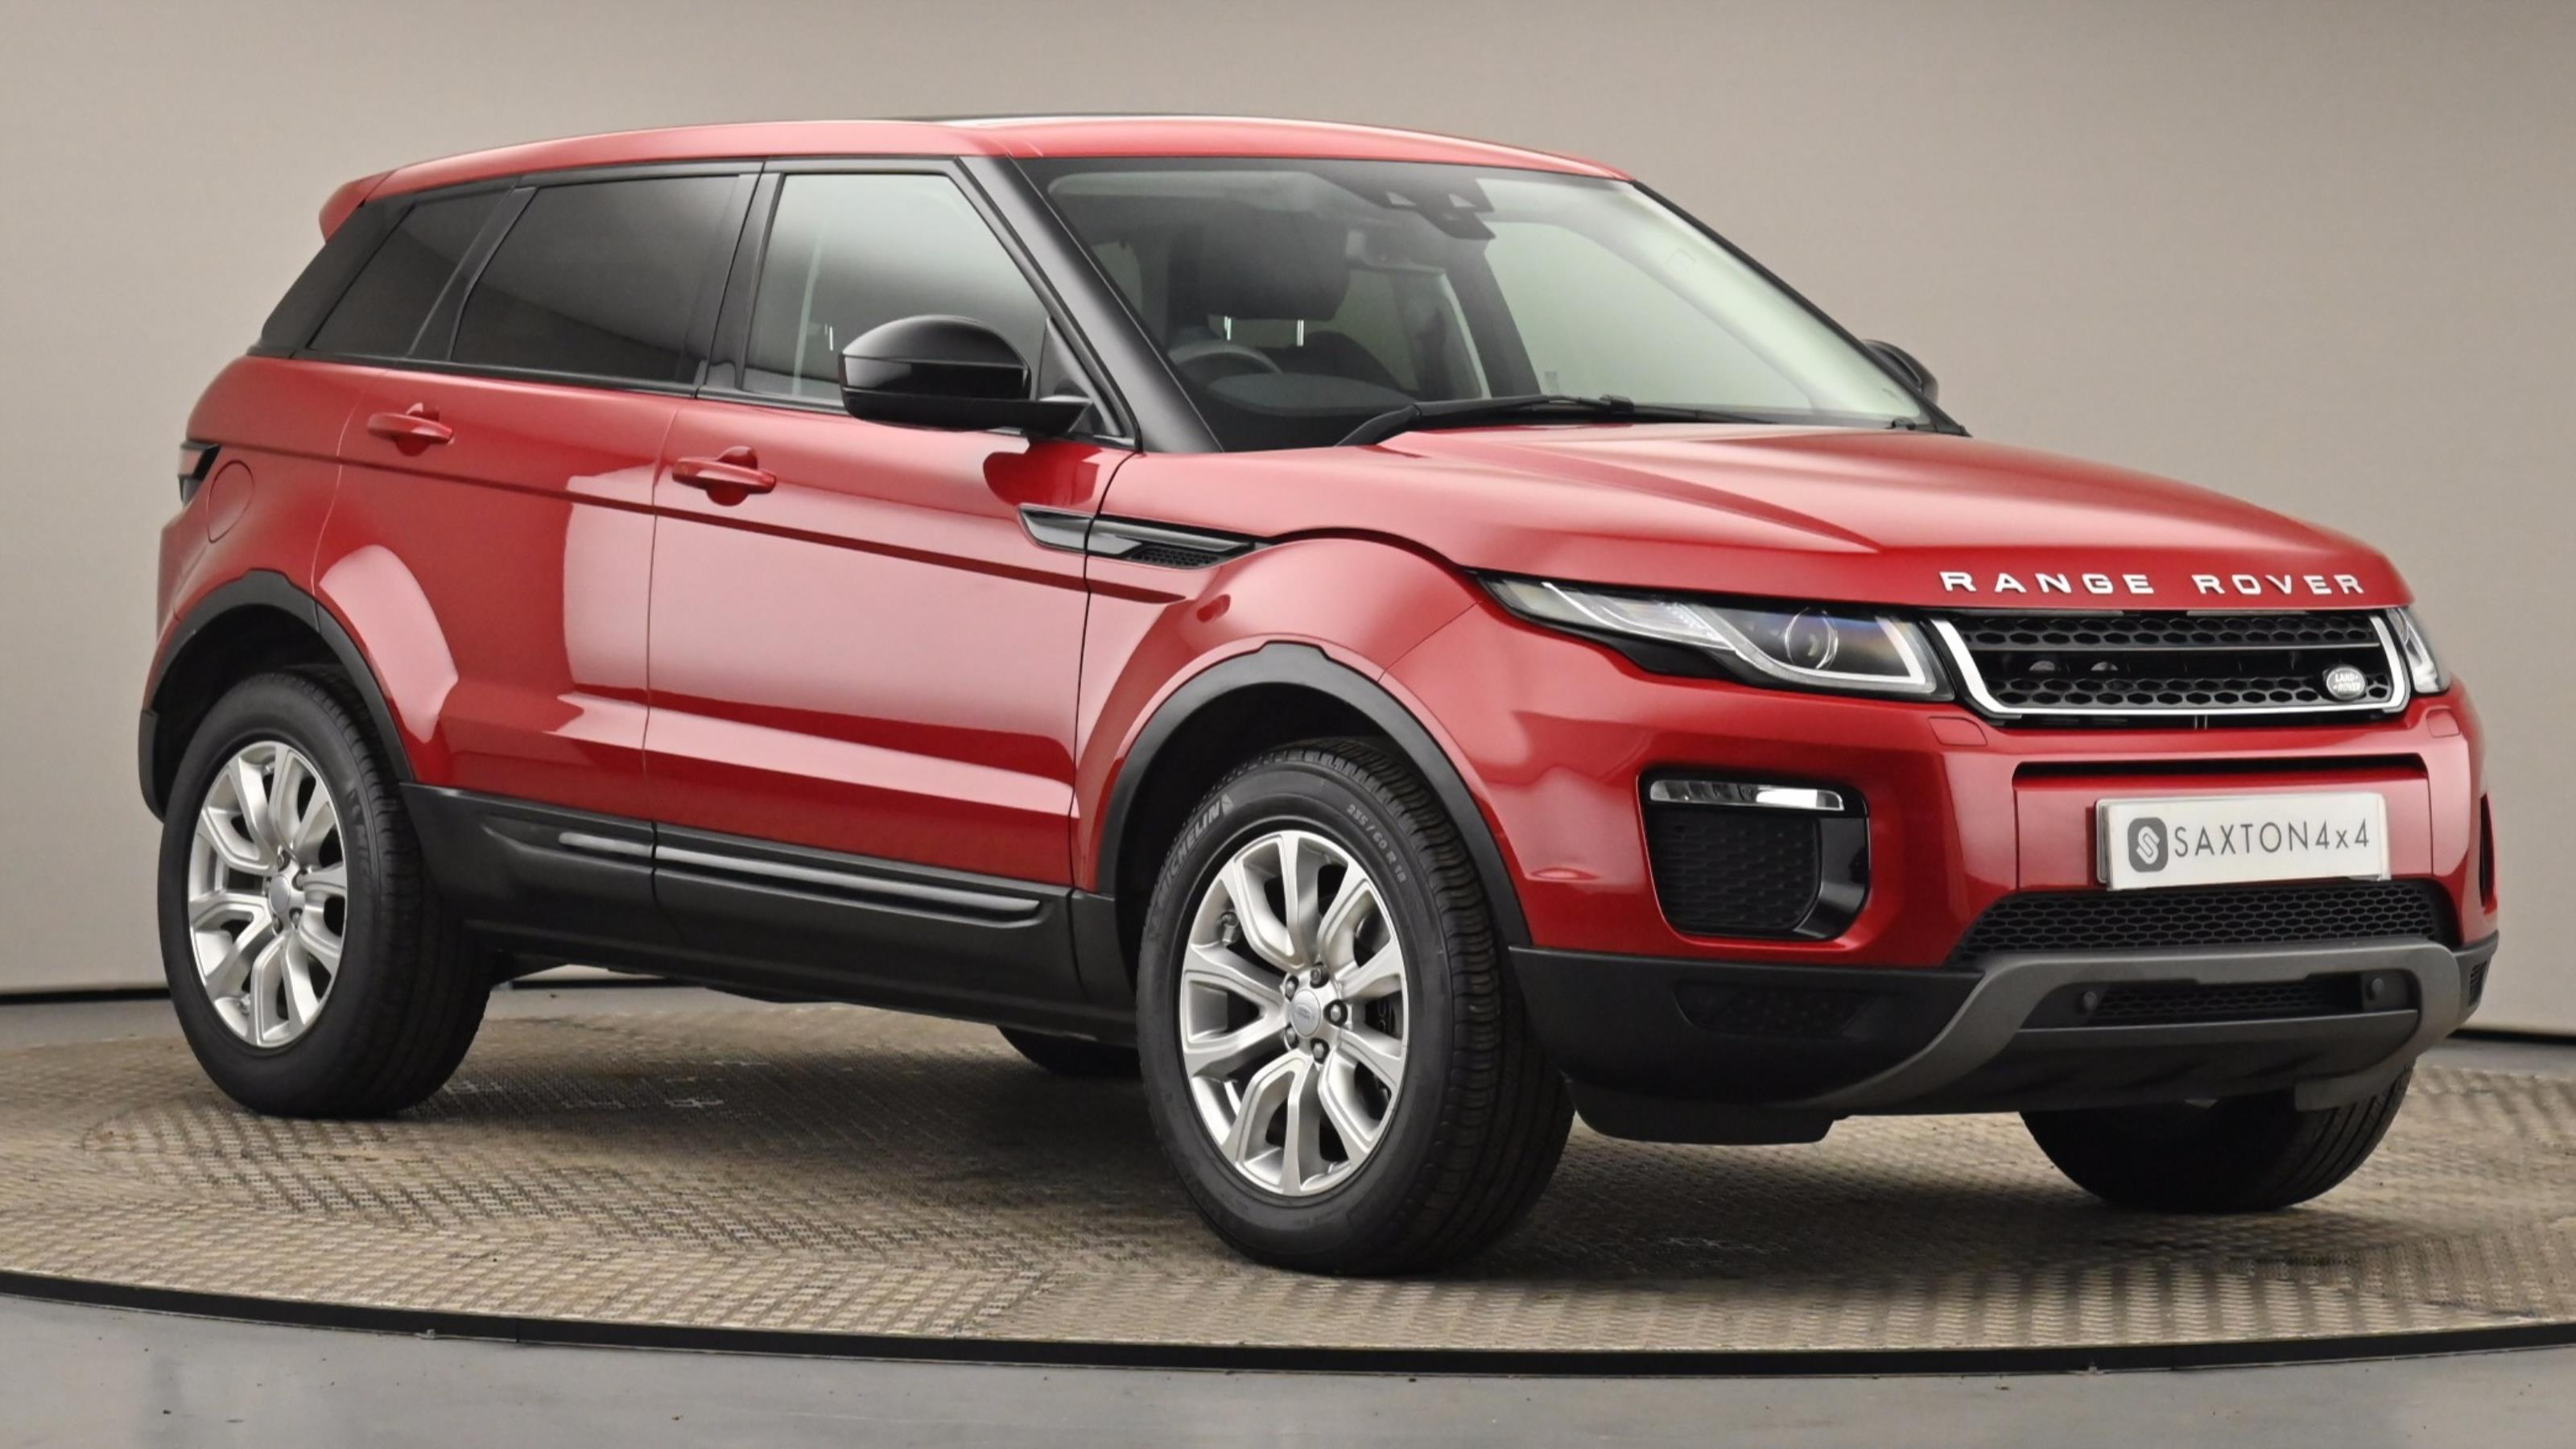 Used 15 Land Rover RANGE ROVER EVOQUE 2.0 TD4 SE Tech 5dr Auto RED at Saxton4x4